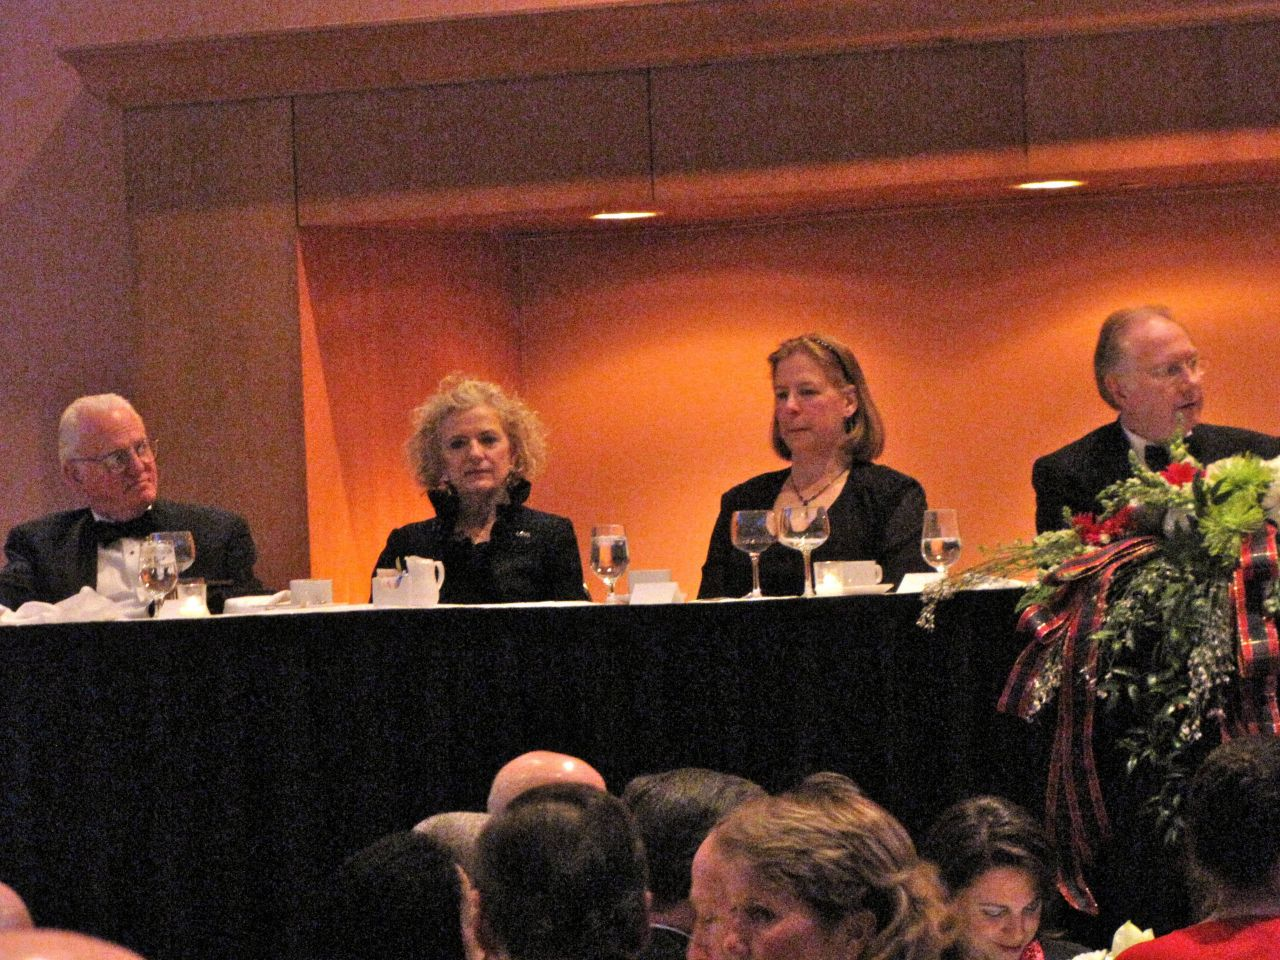 From left (click to enlarge): Chicago Ald. Ed Burke, State Supreme Court Justice Anne Burke, Mary Kilbride, State Supreme Court Justice Thomas Kilbride